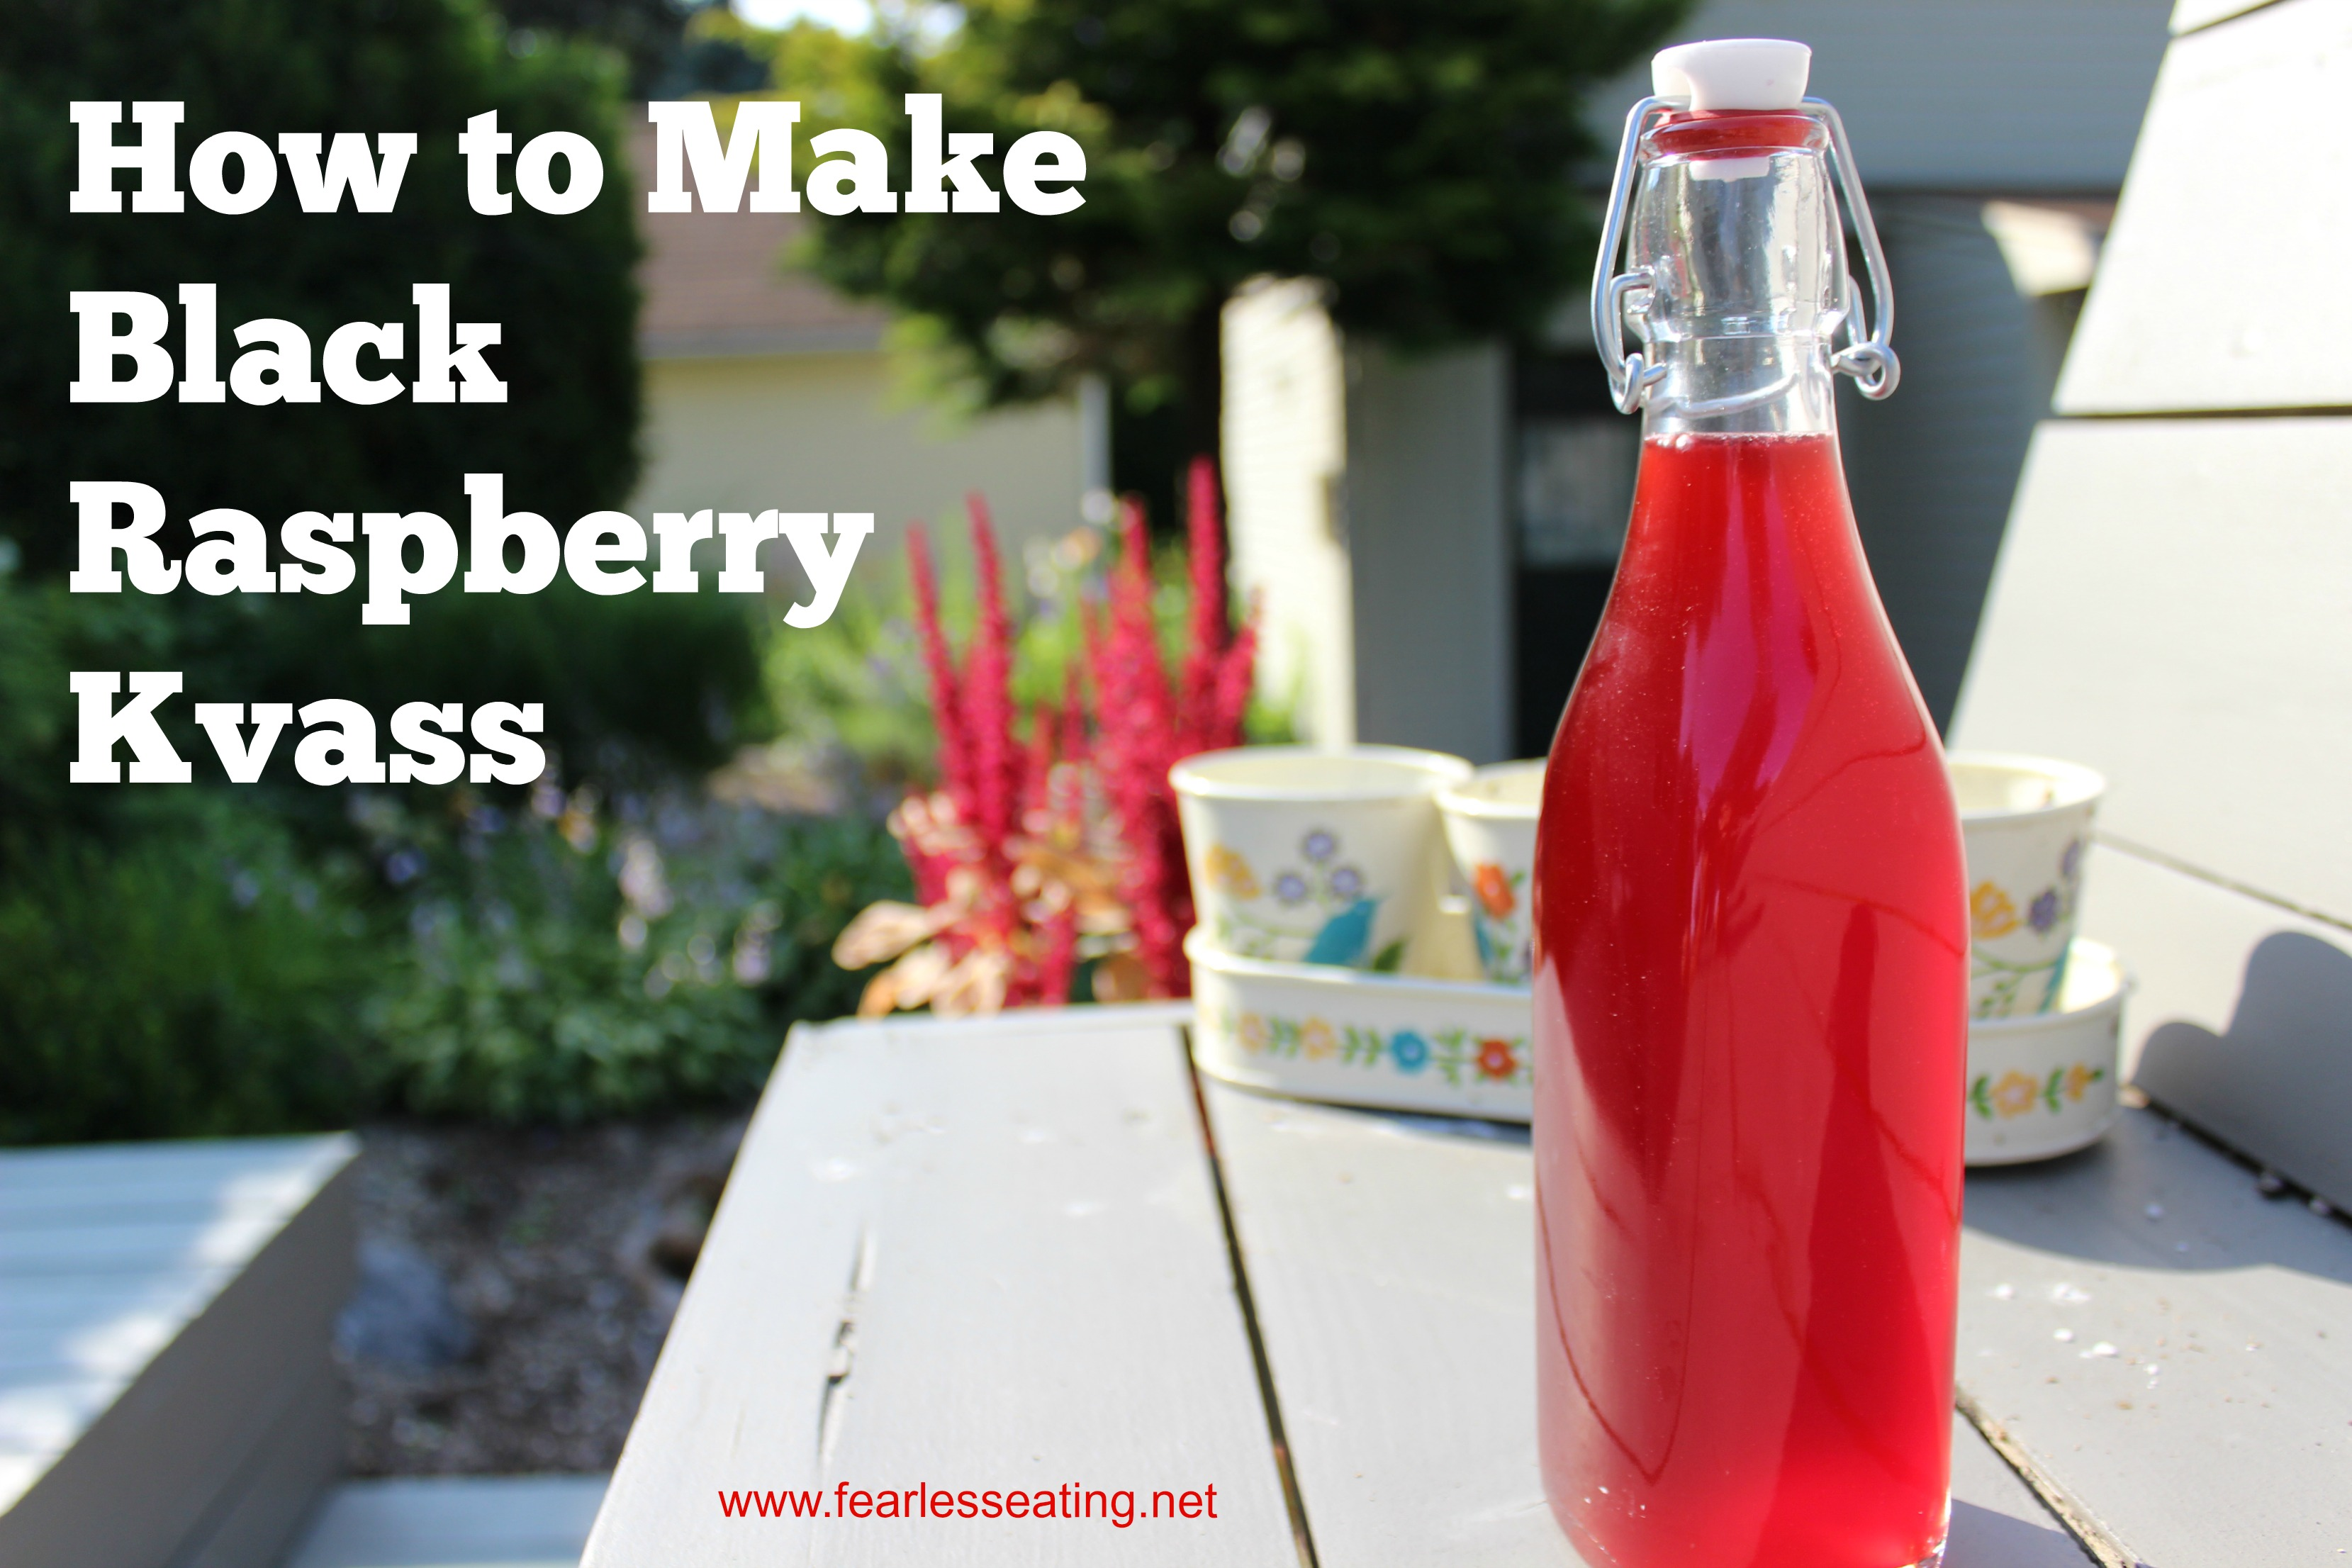 How to Make Black Raspberry Kvass